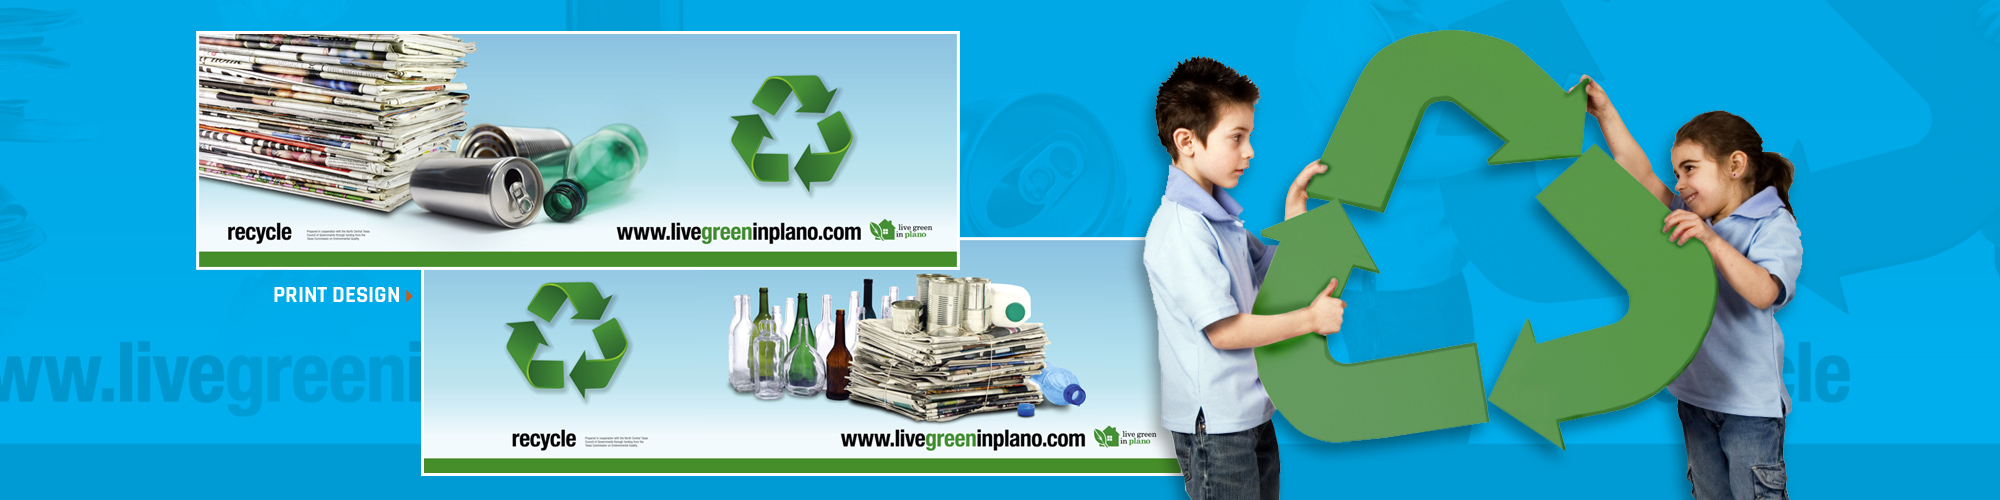 CityofPlano-Recycle-Featured